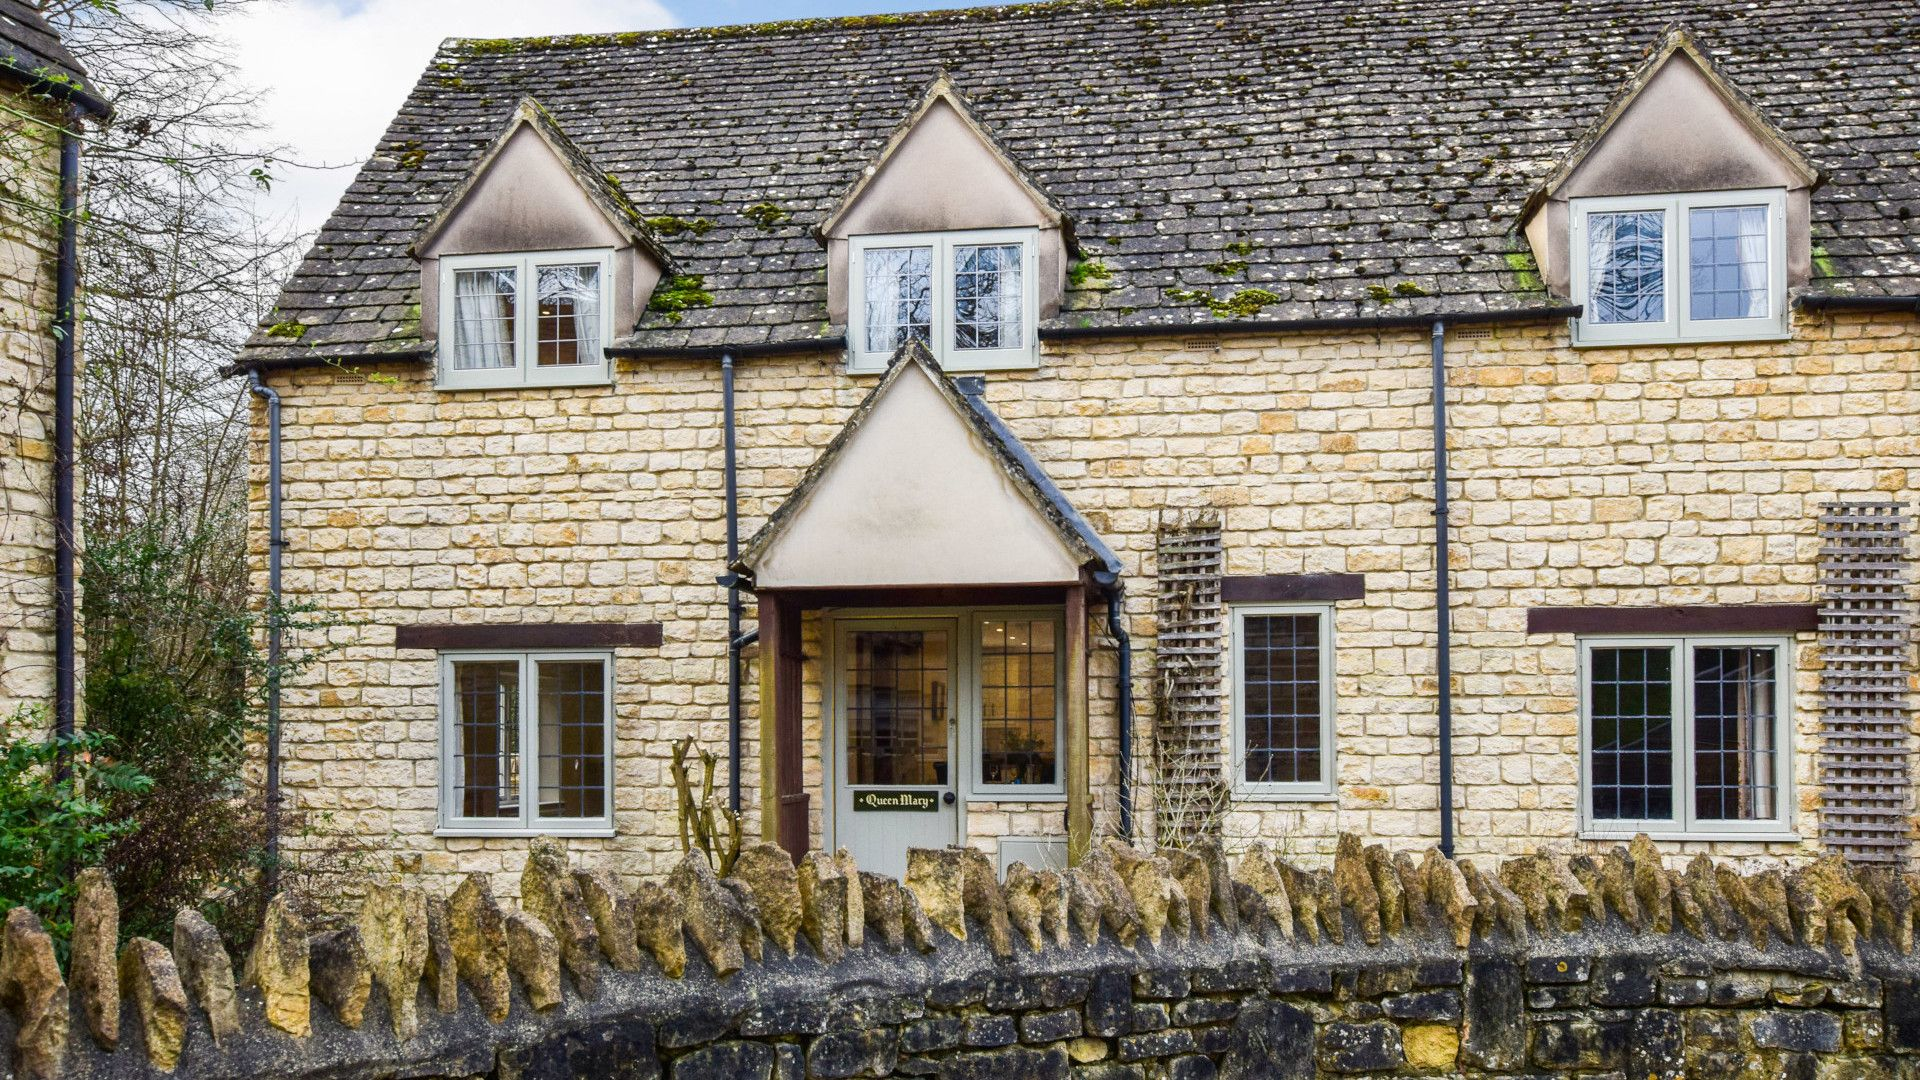 Queen Mary Cottage at Sudeley Castle, Bolthole Retreats